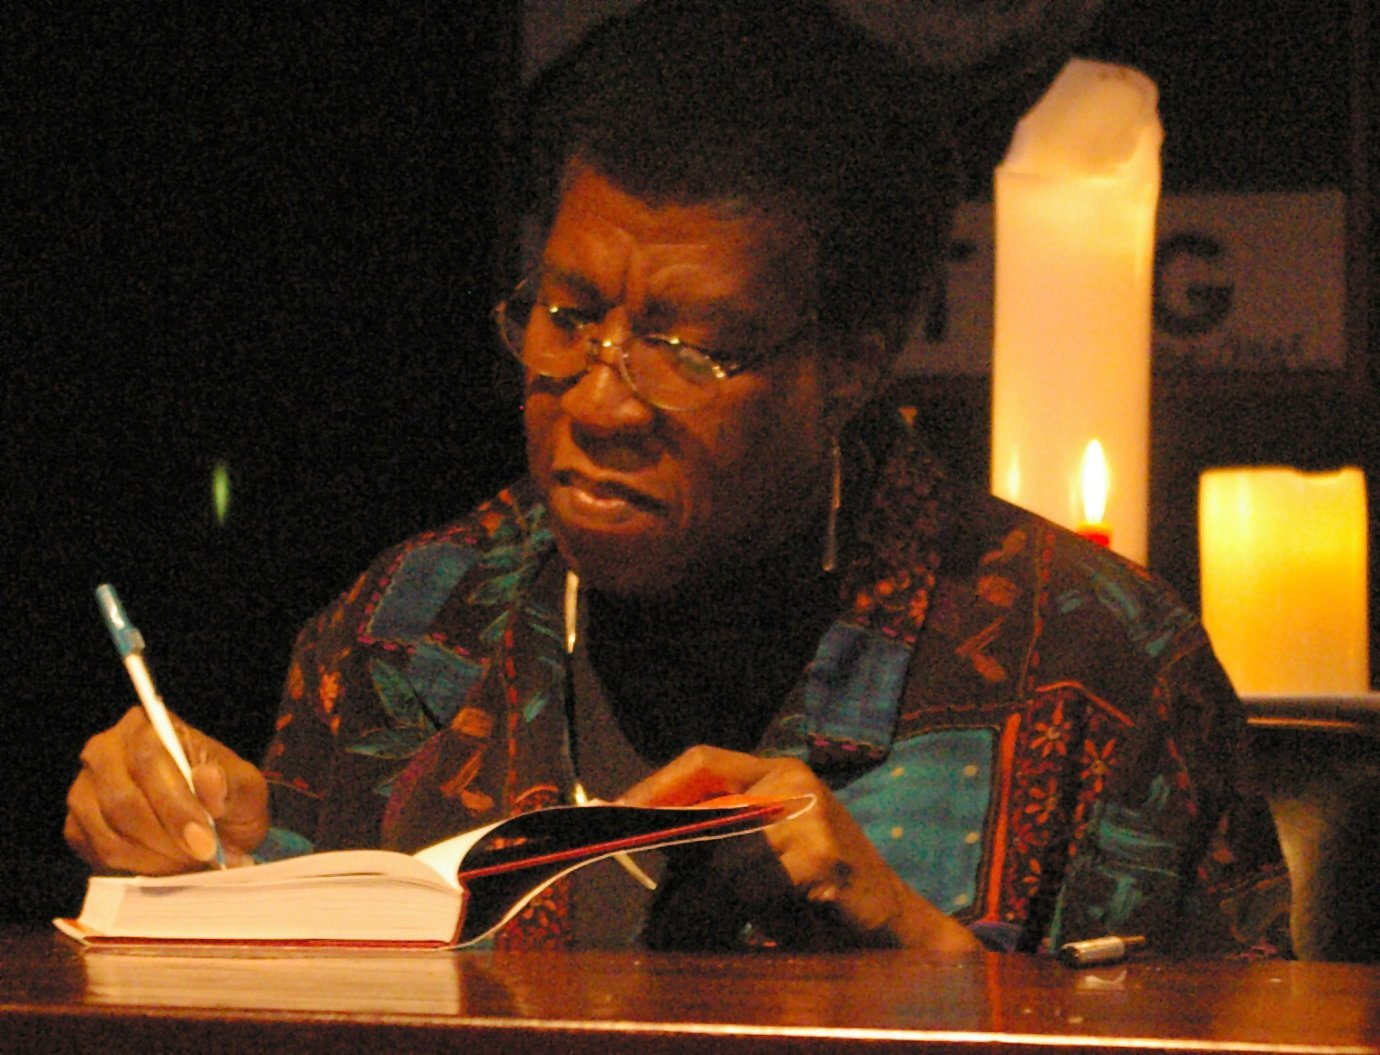 """Octavia Estelle Butler signing a copy of """"Fledgling"""" after speaking and answering questions from the audience on October 25, 2005. 